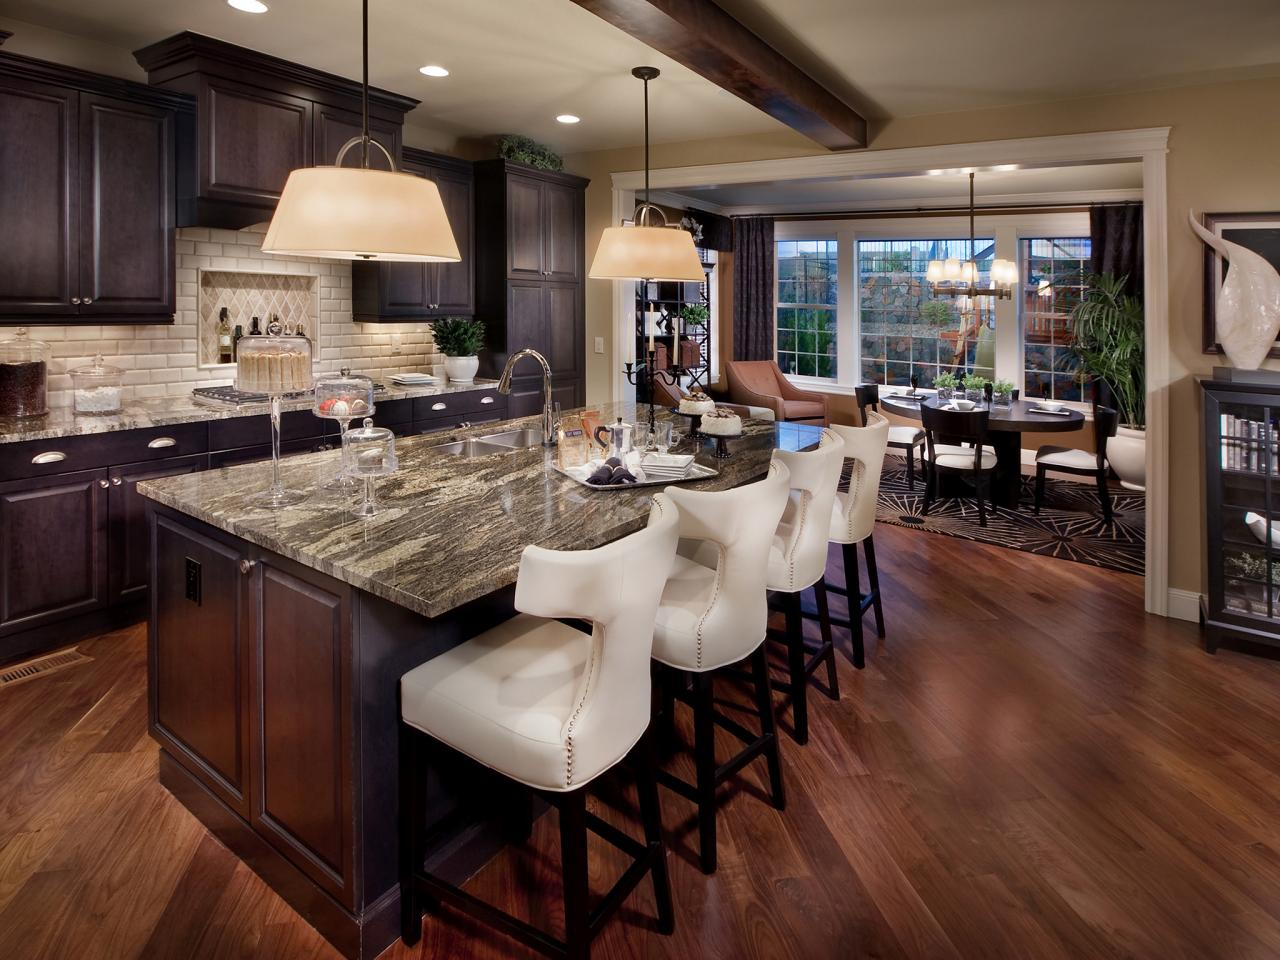 Black kitchen islands kitchen designs choose kitchen for Kitchen design ideas photo gallery